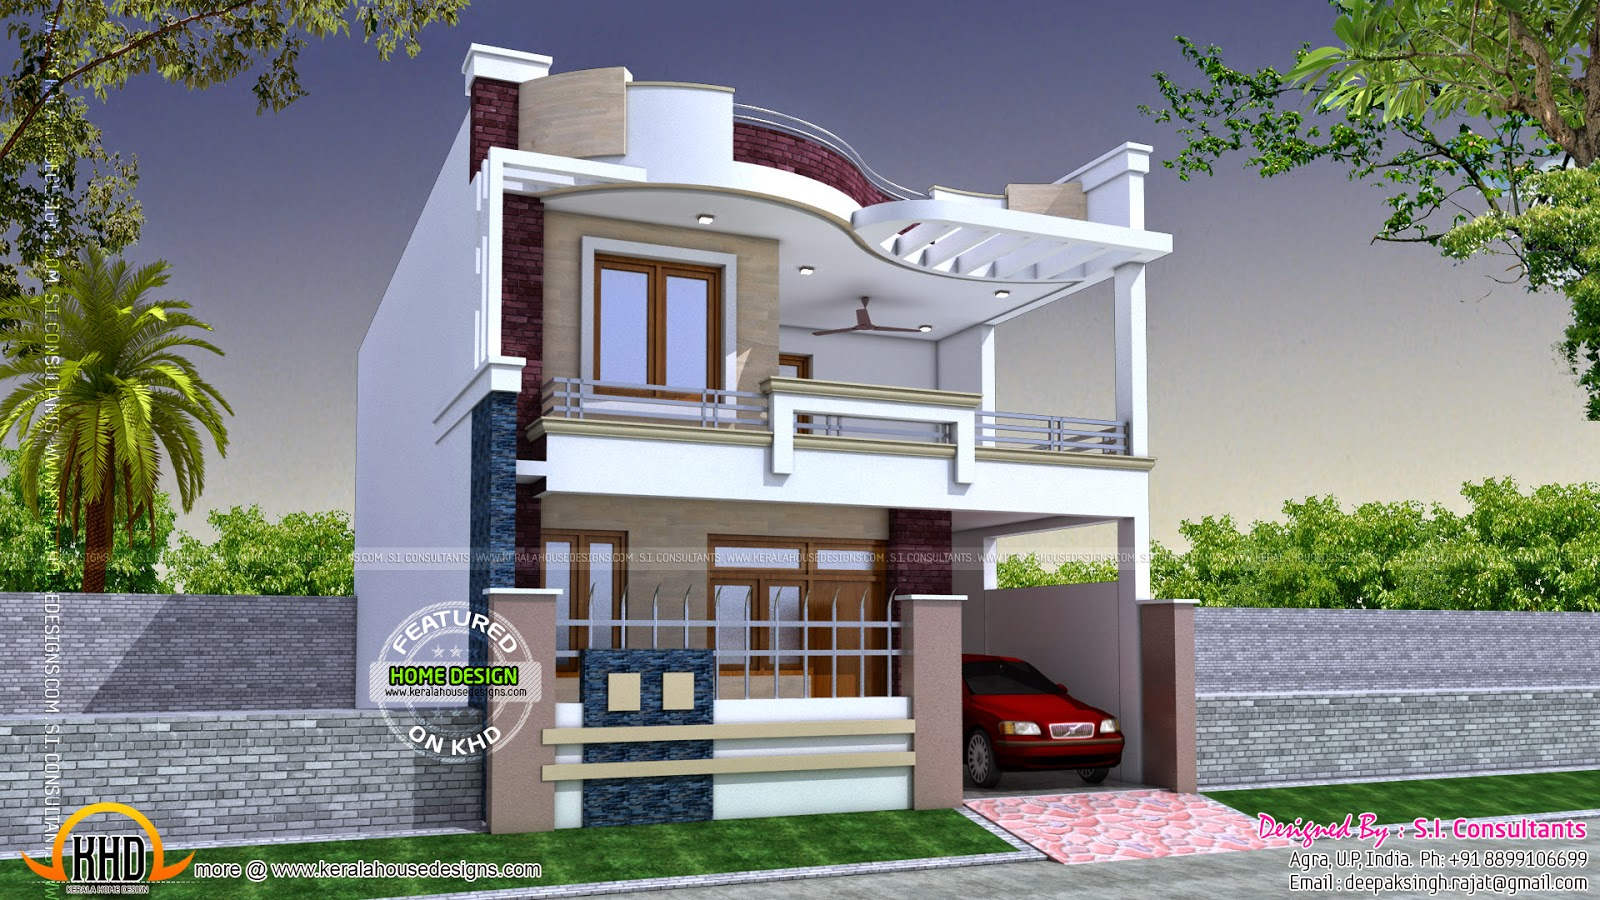 Modern indian home design kerala home design and floor plans Home interior design indian style